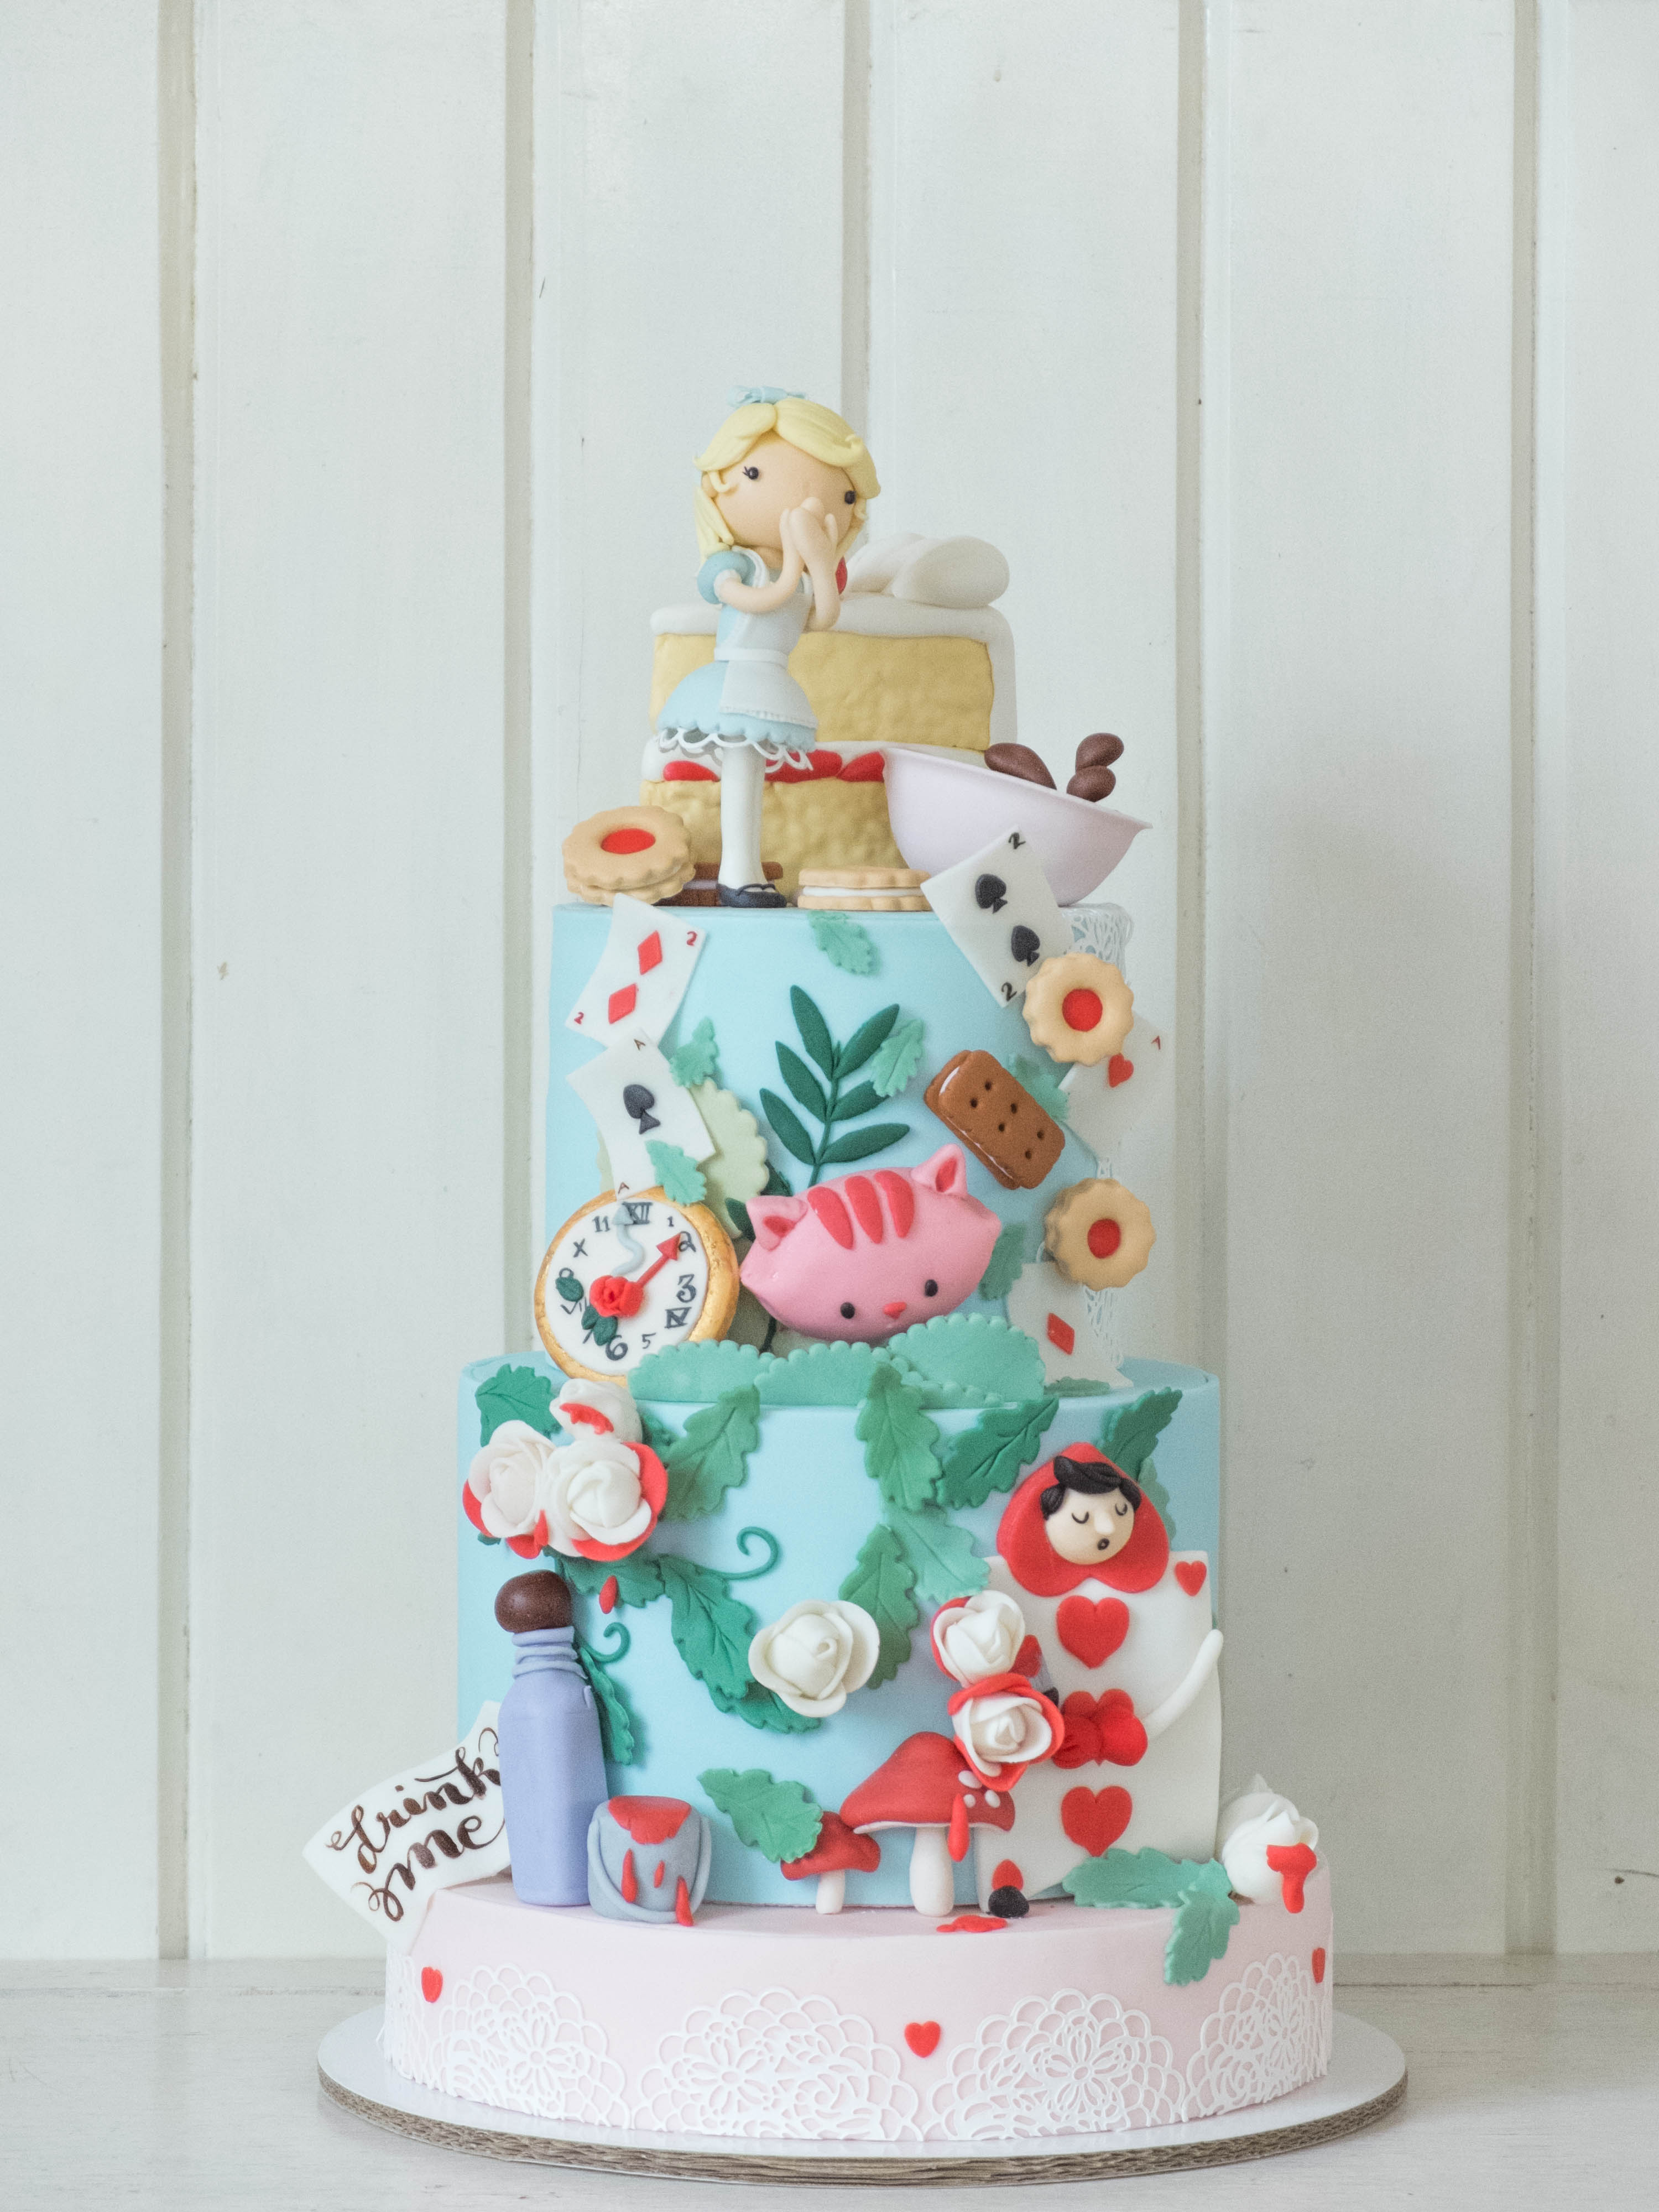 Cake Art Studio Atherstone : Cottontail Cake Studio Sugar Art & Pastries